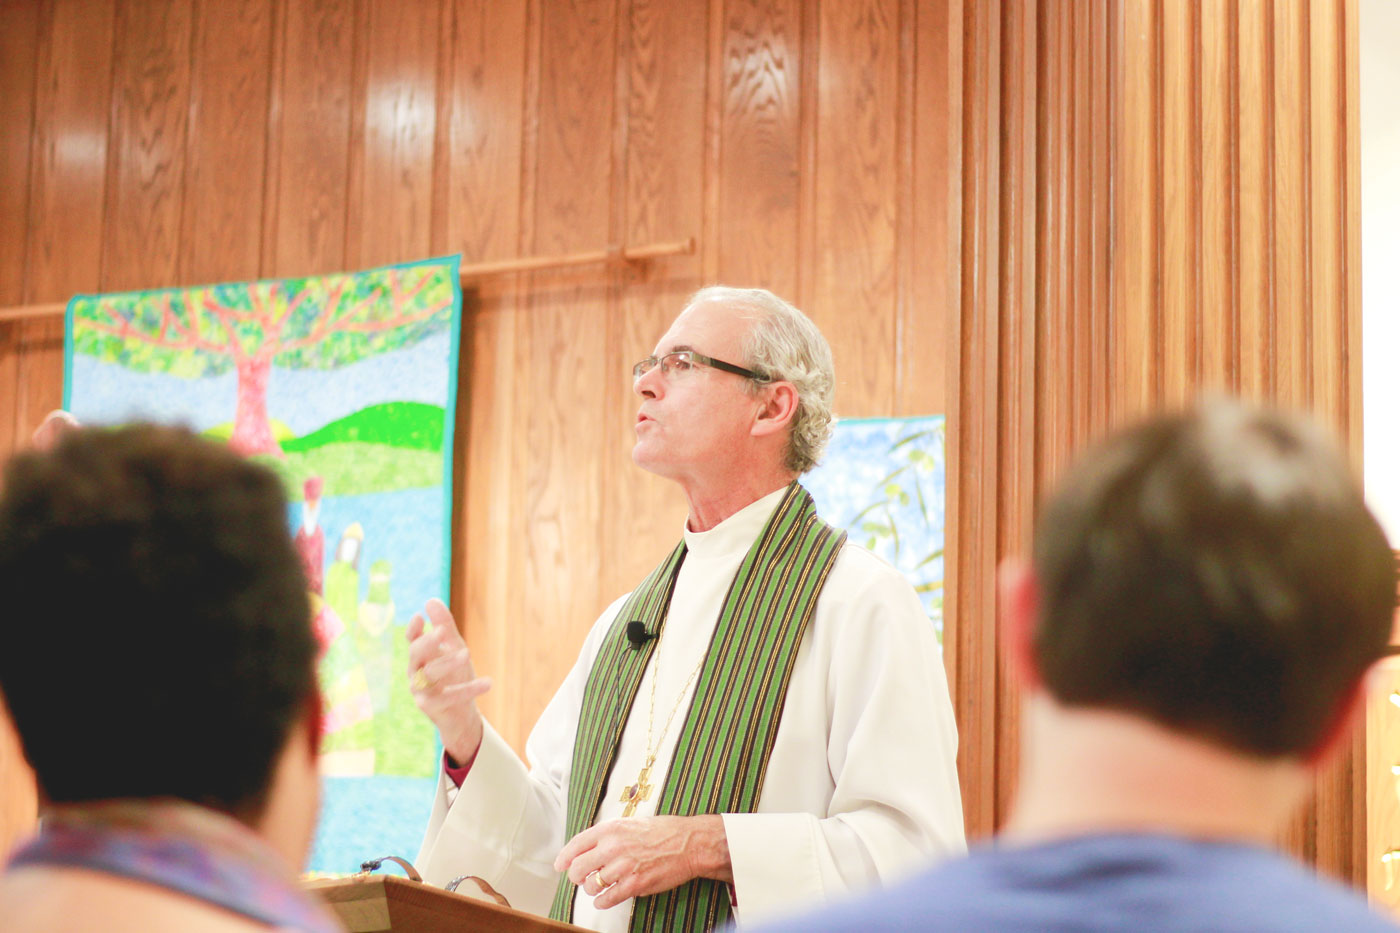 The Rt. Rev. Dr. Porter Taylor leads School of Divinity Community Worship on October 19, 2017 in Davis Chapel